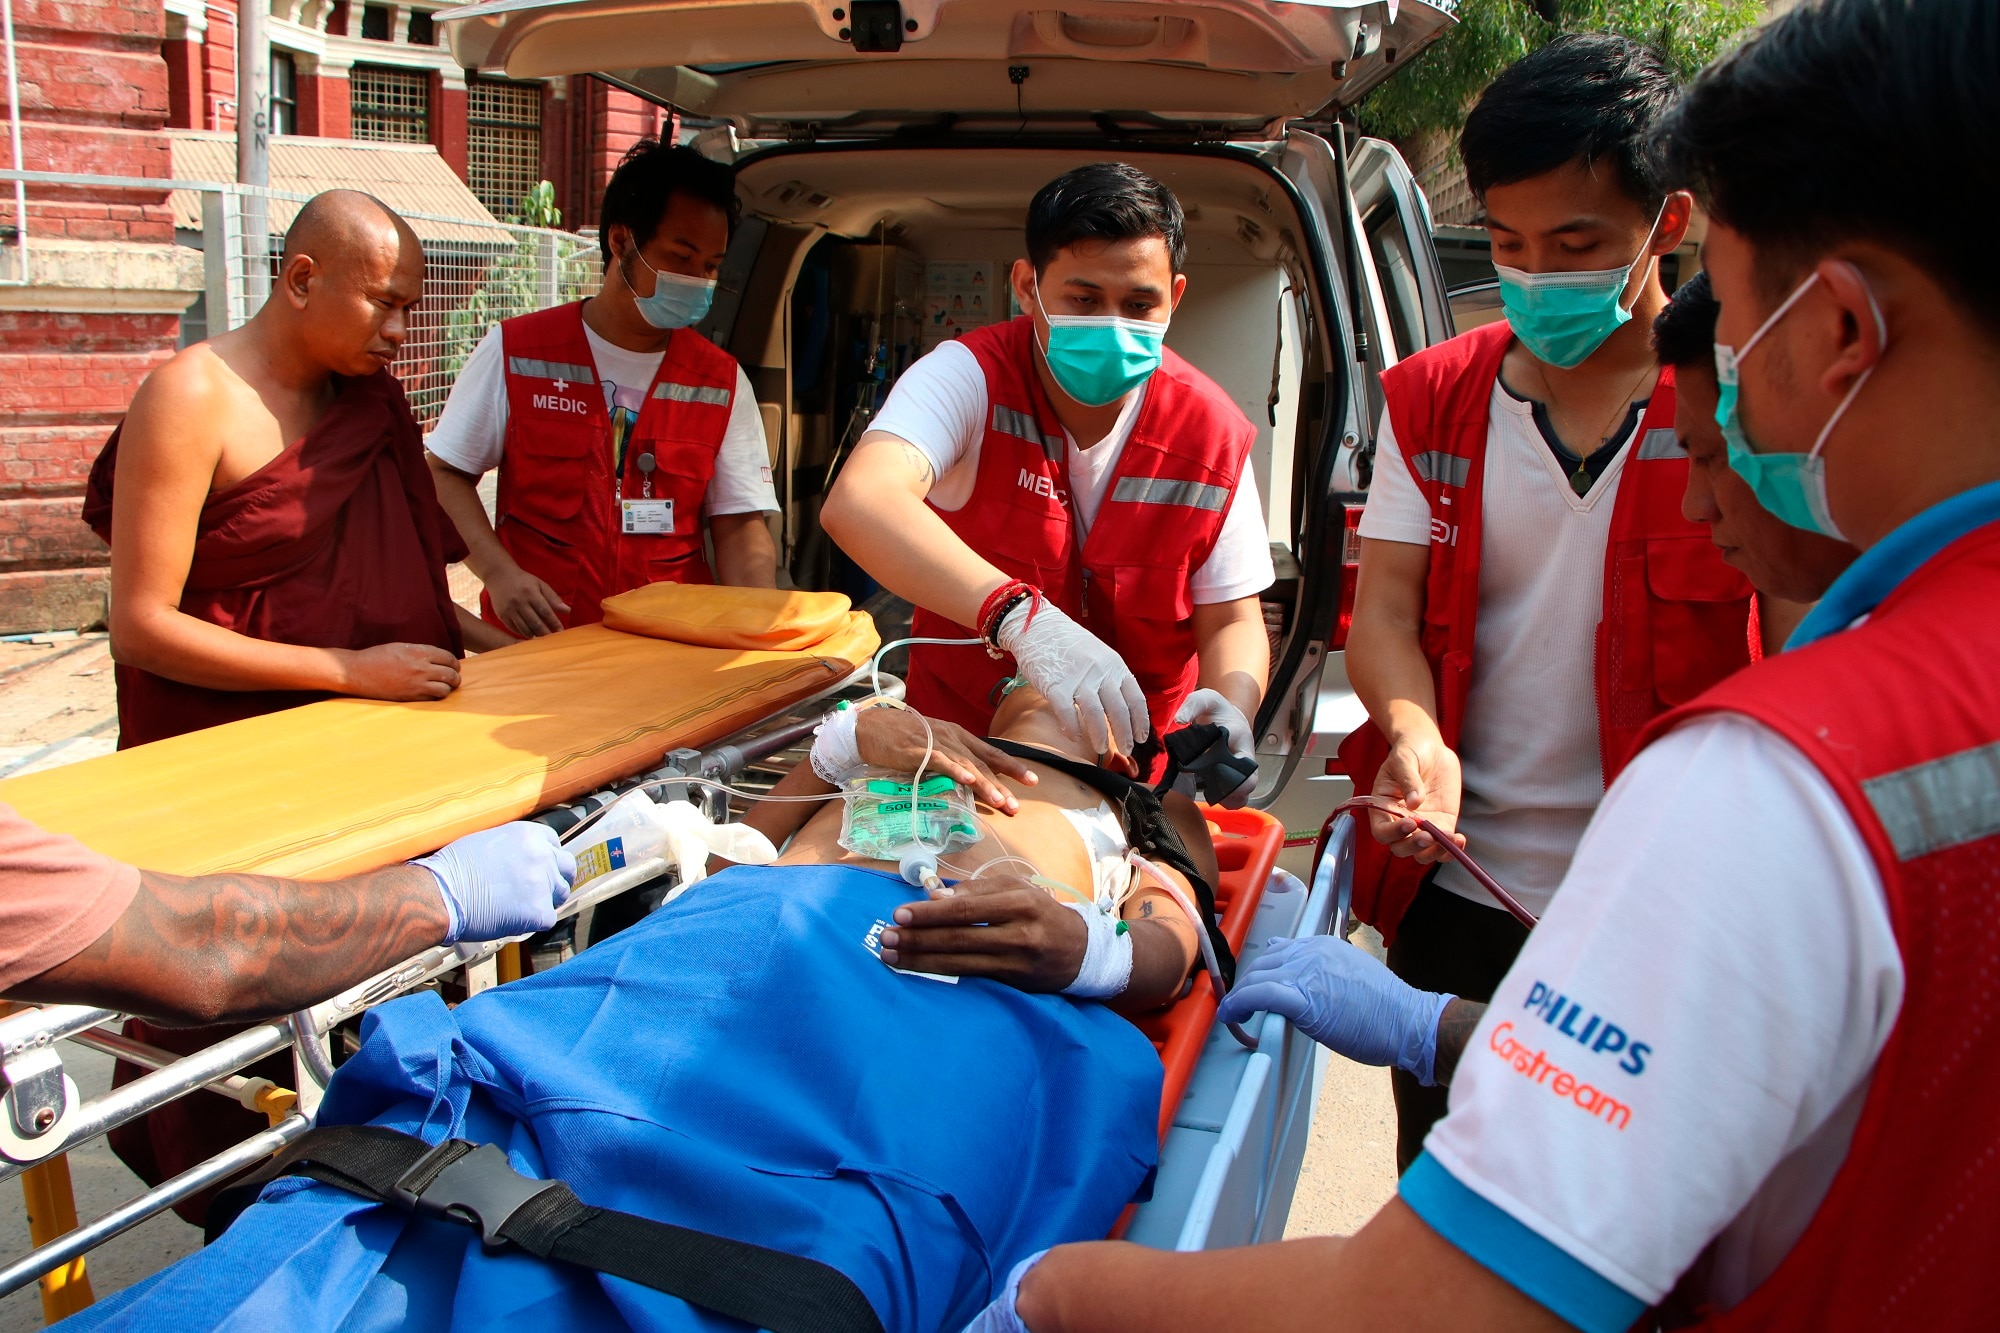 An injured anti-coup protester is brought in for medical treatment at a hospital in Latha township, Yangon, Myanmar.